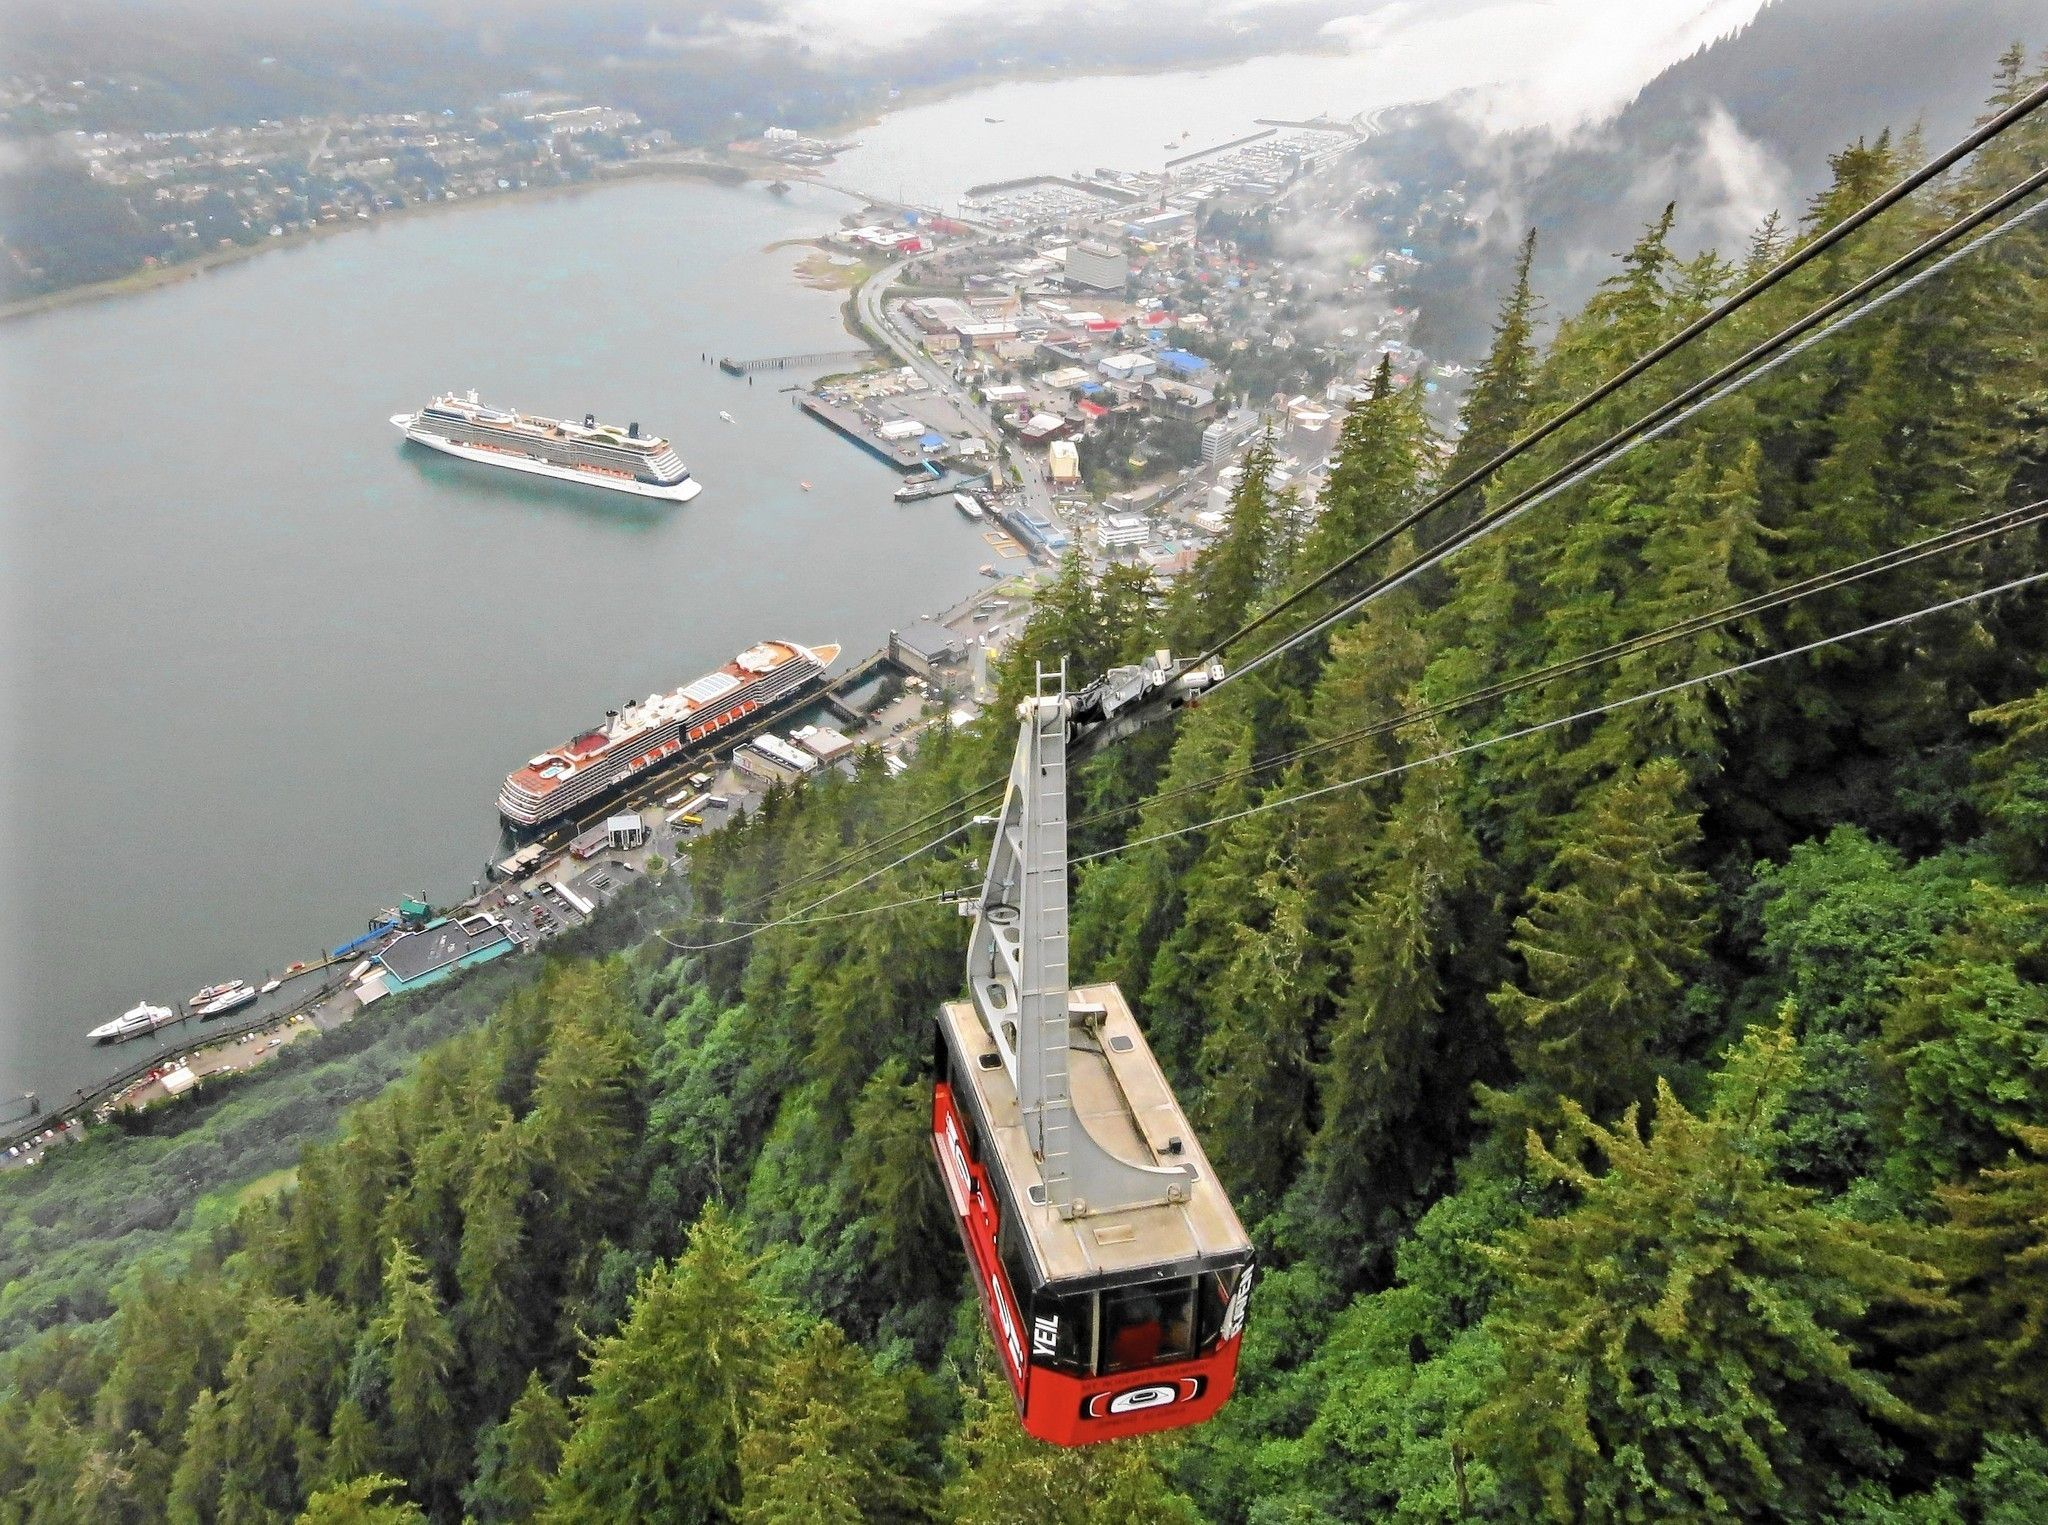 What To See In Alaska: 8 Must-see Destinations By Cruise